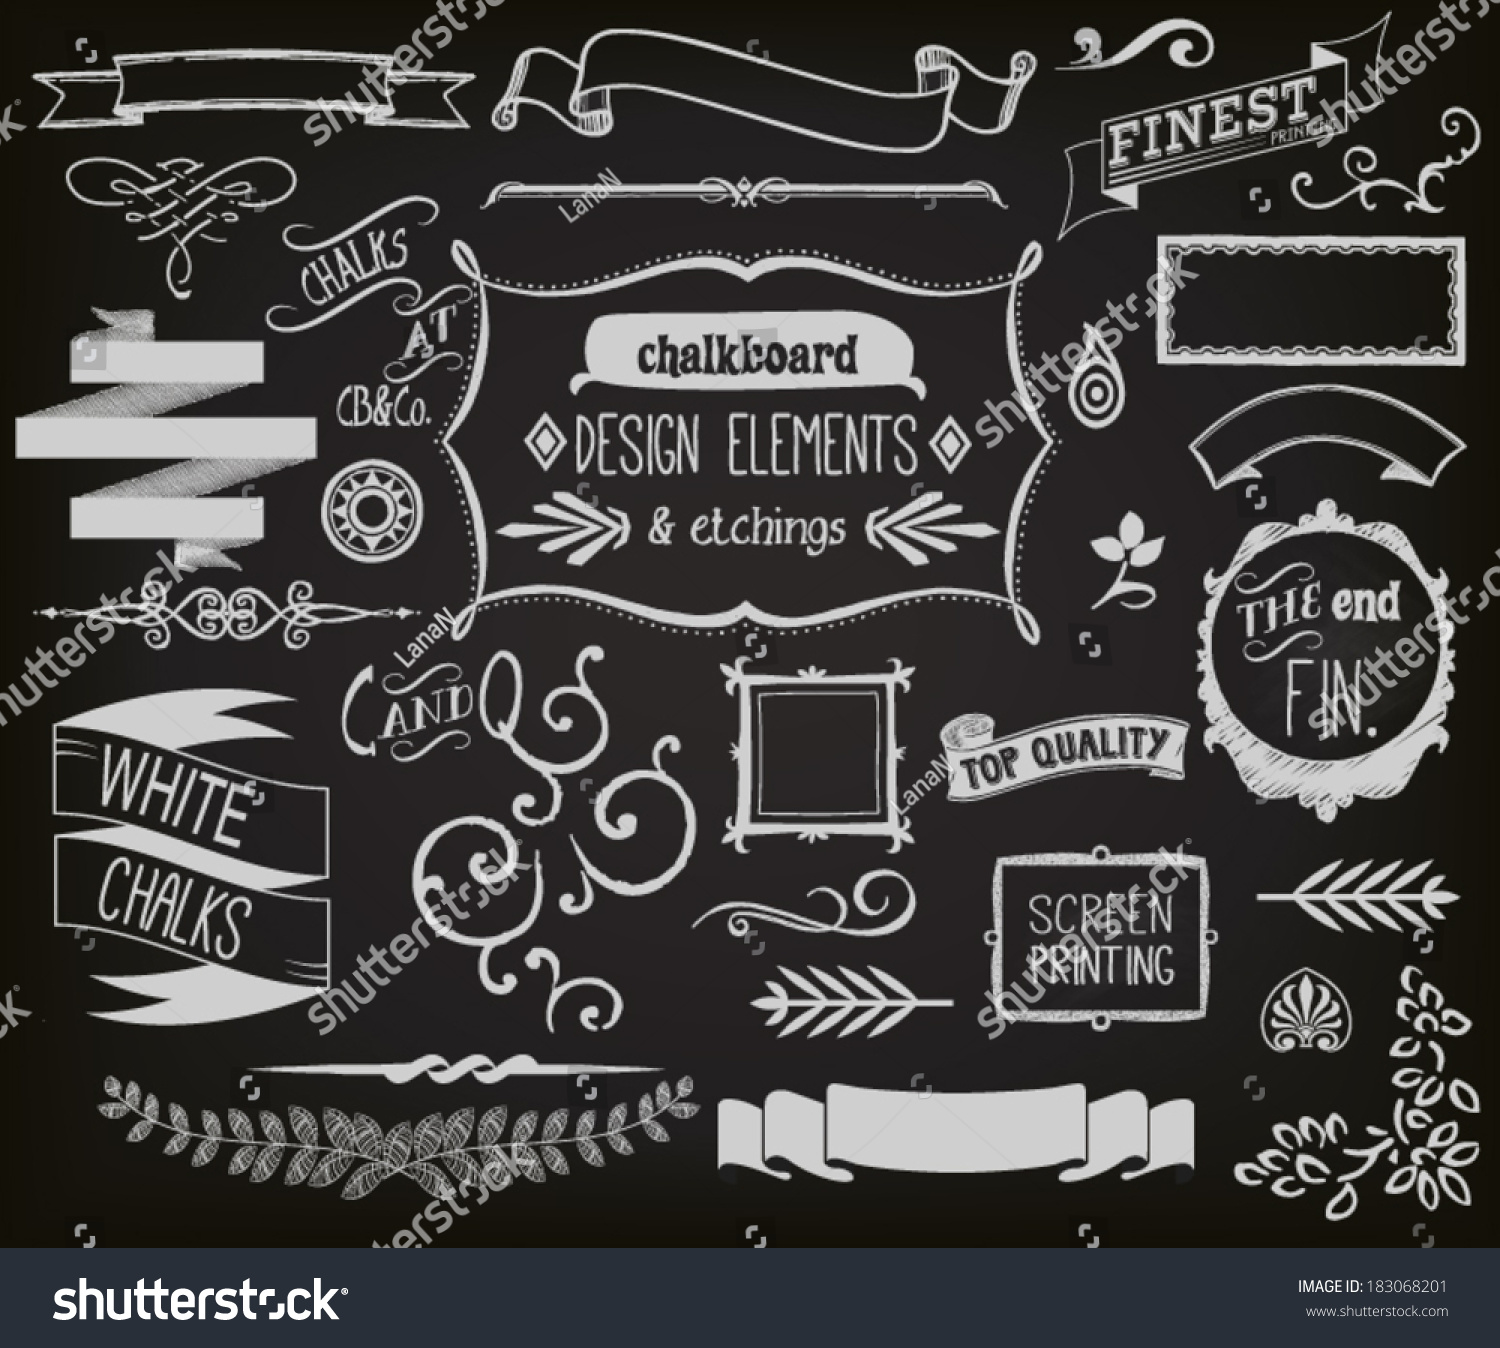 Home Design Ideas Blackboard: Chalkboard Design Elements Etchings Blackboard Clip Stock